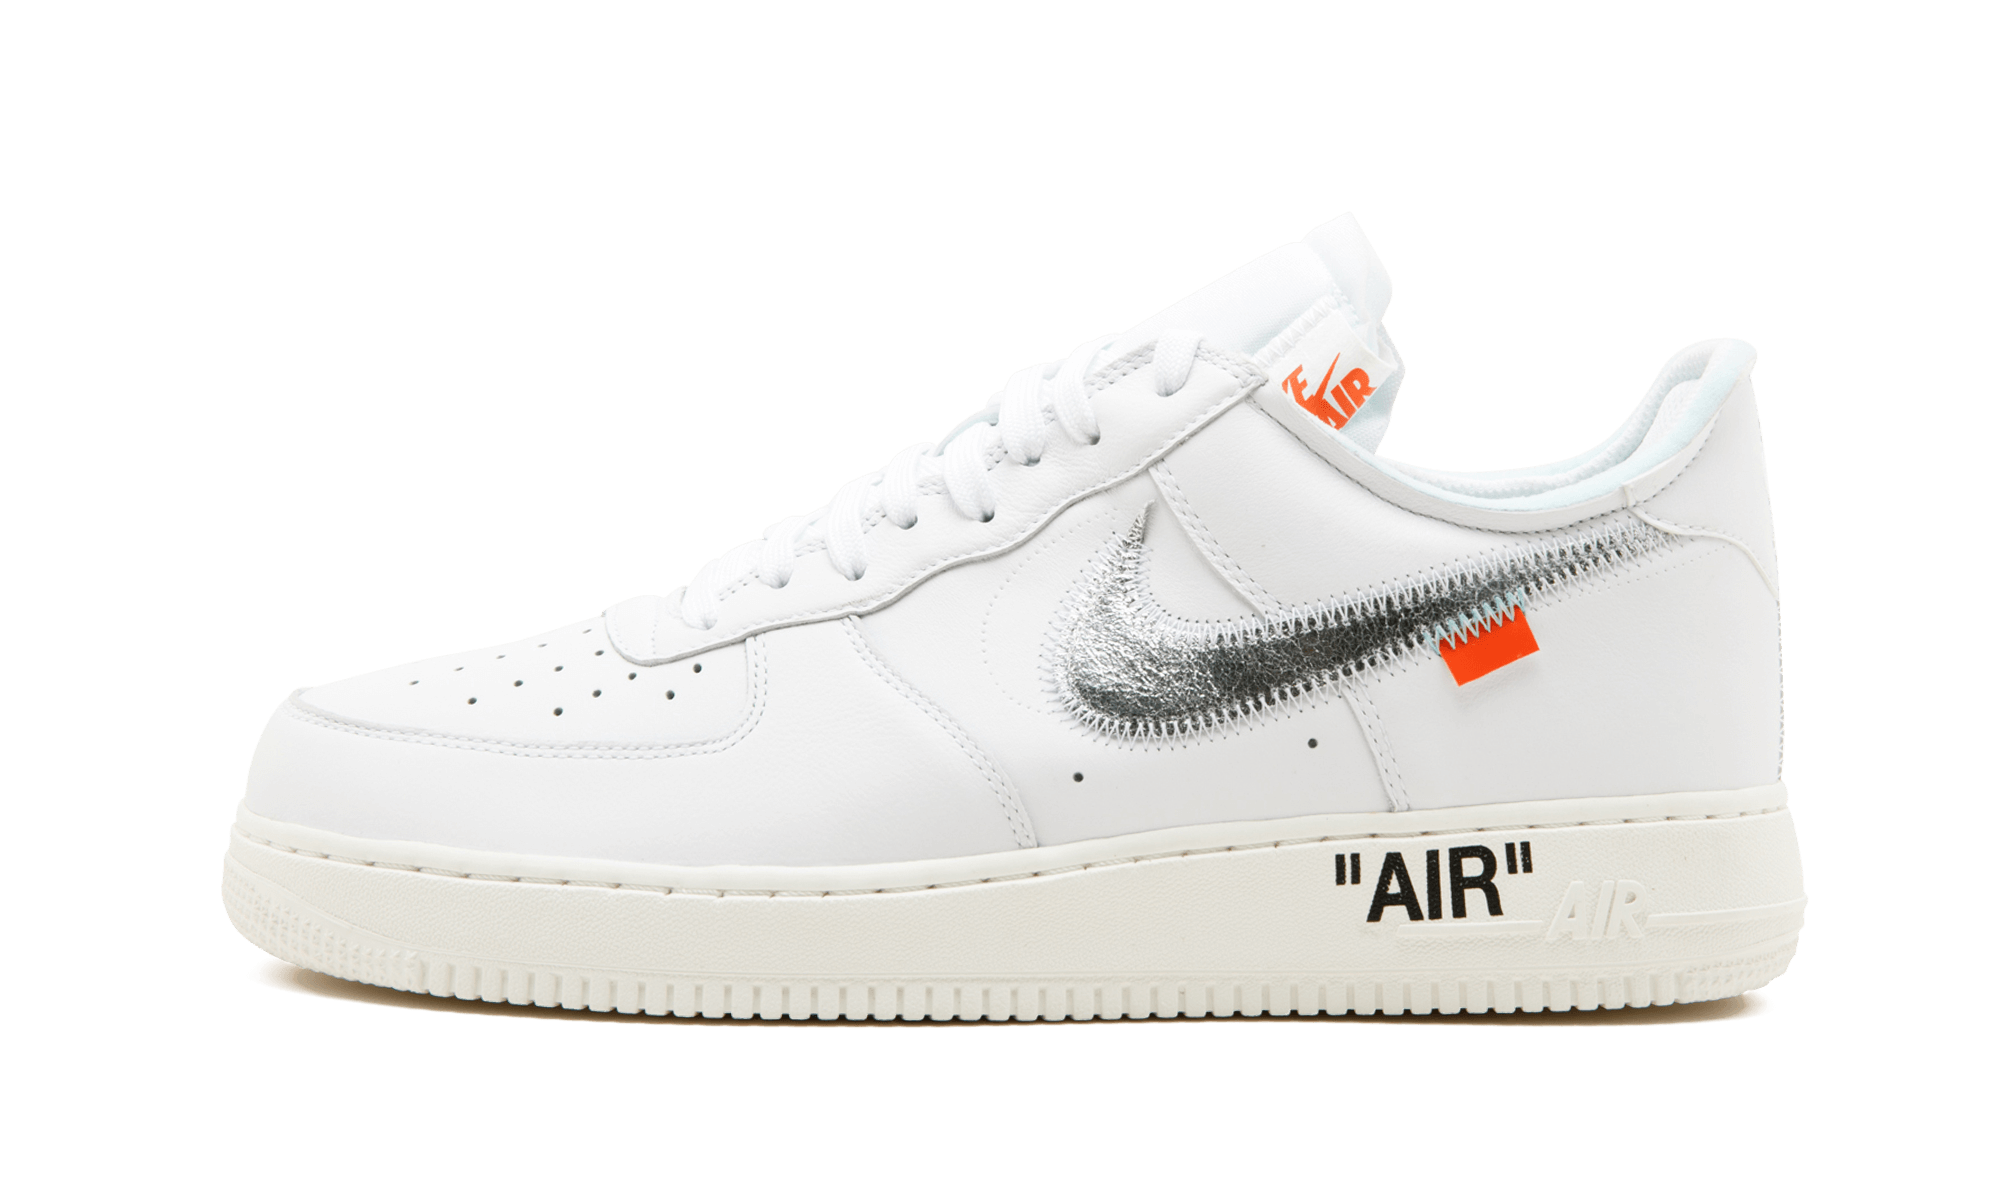 2017 Nike Off White Air Force 1 '07 Complexcon Virgil AO4297 100